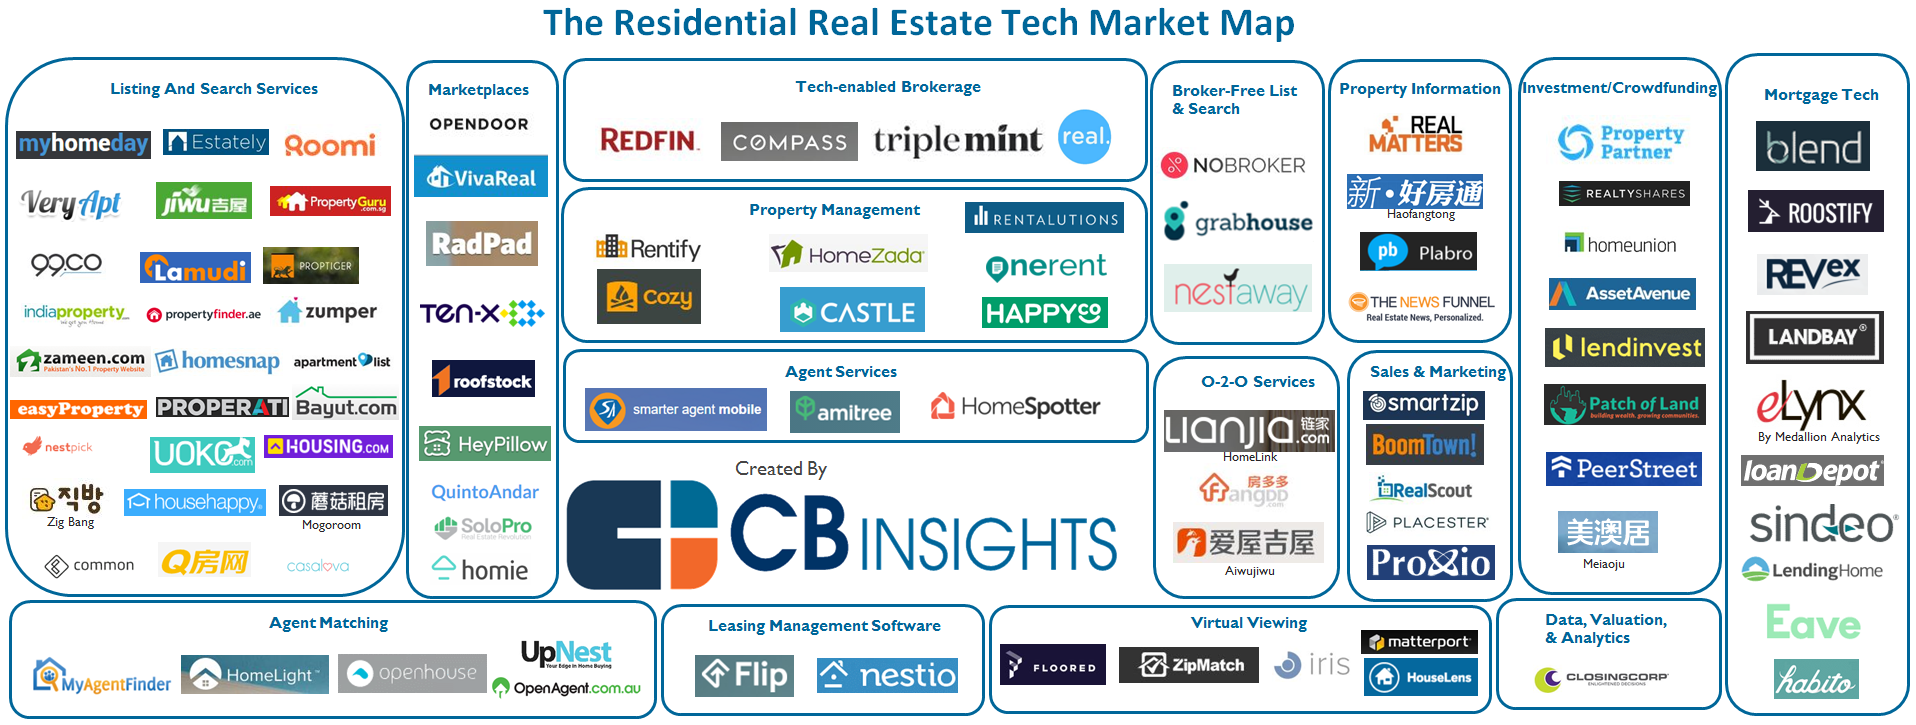 Startups reshaping residential real estate buying and